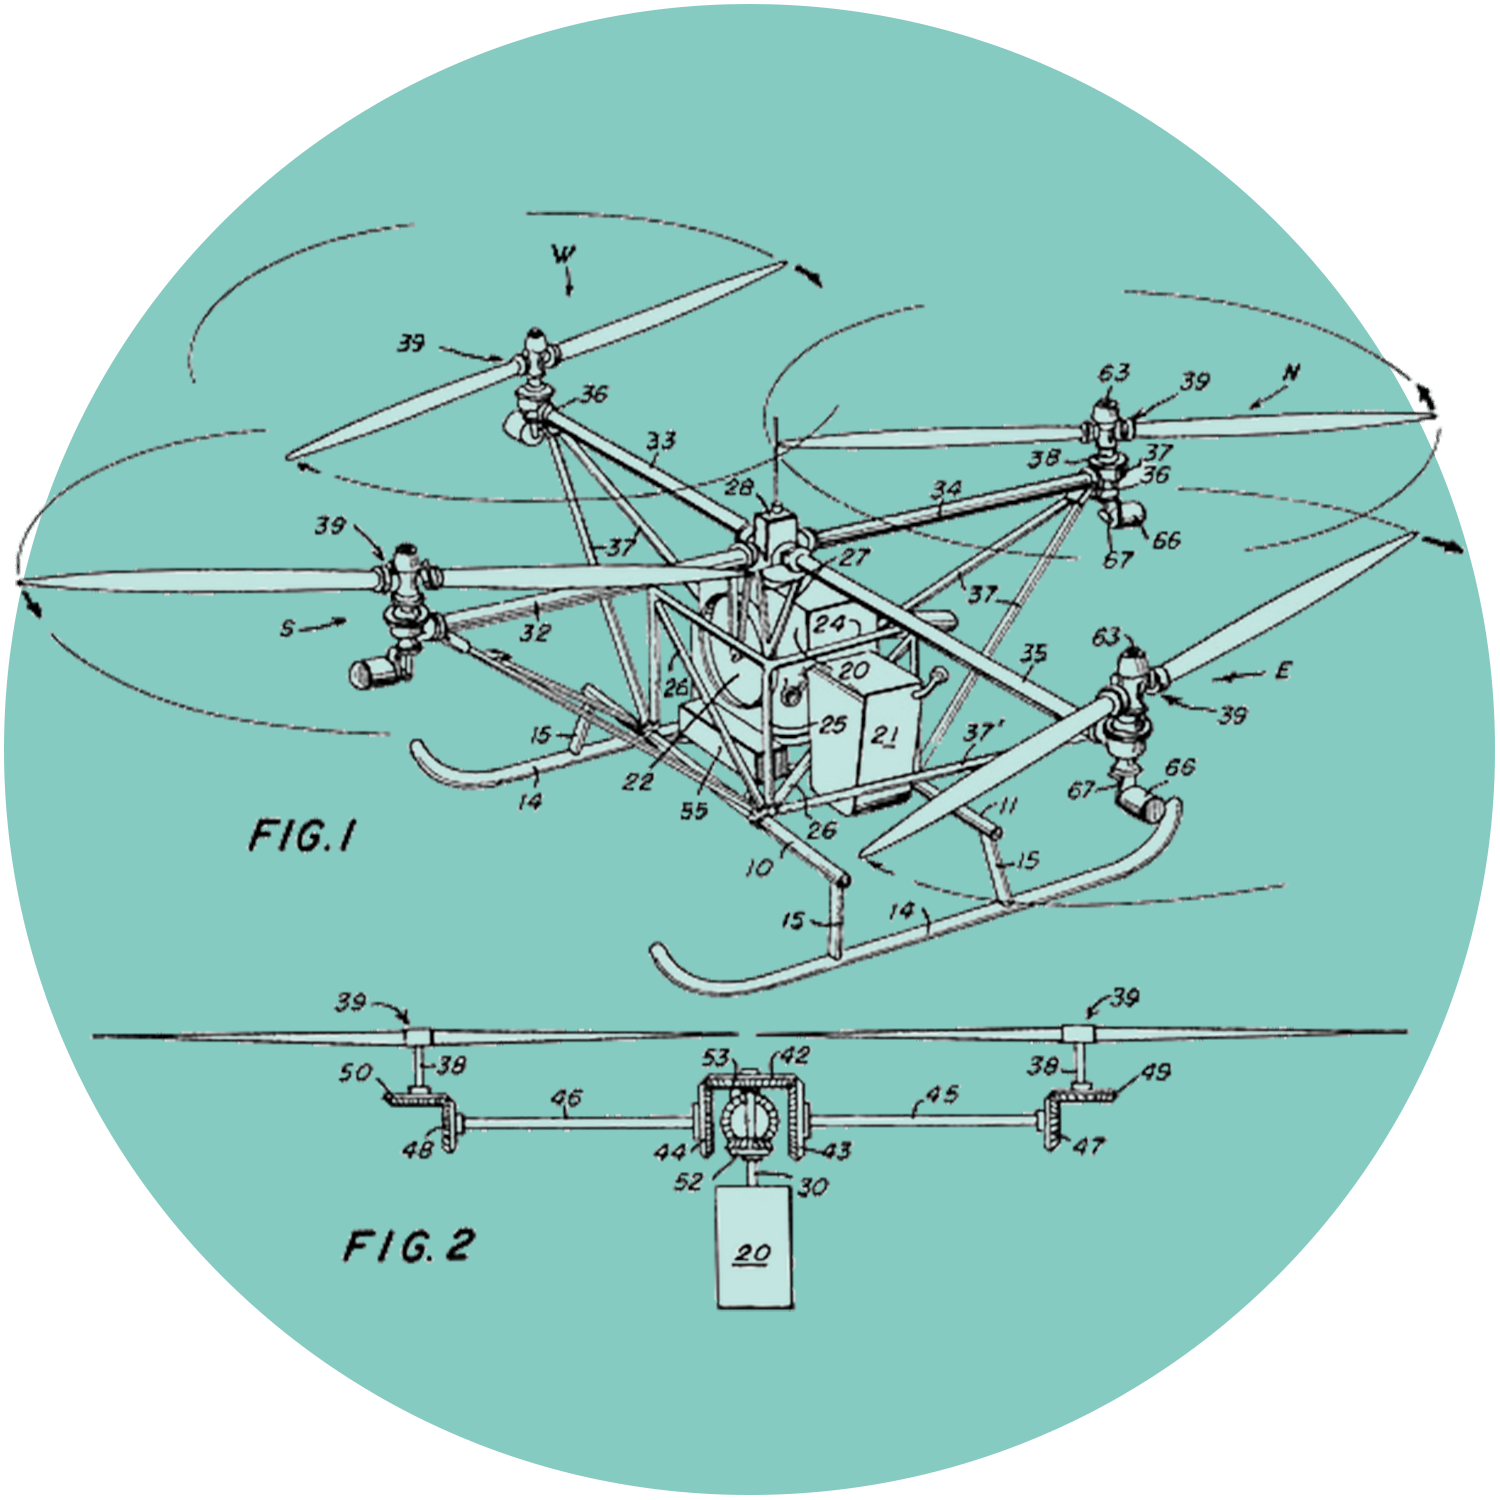 Omni-directional, Vertical-lift, Helicopter Drone by Vanderlip // PerfectXL Spreadsheet Validation